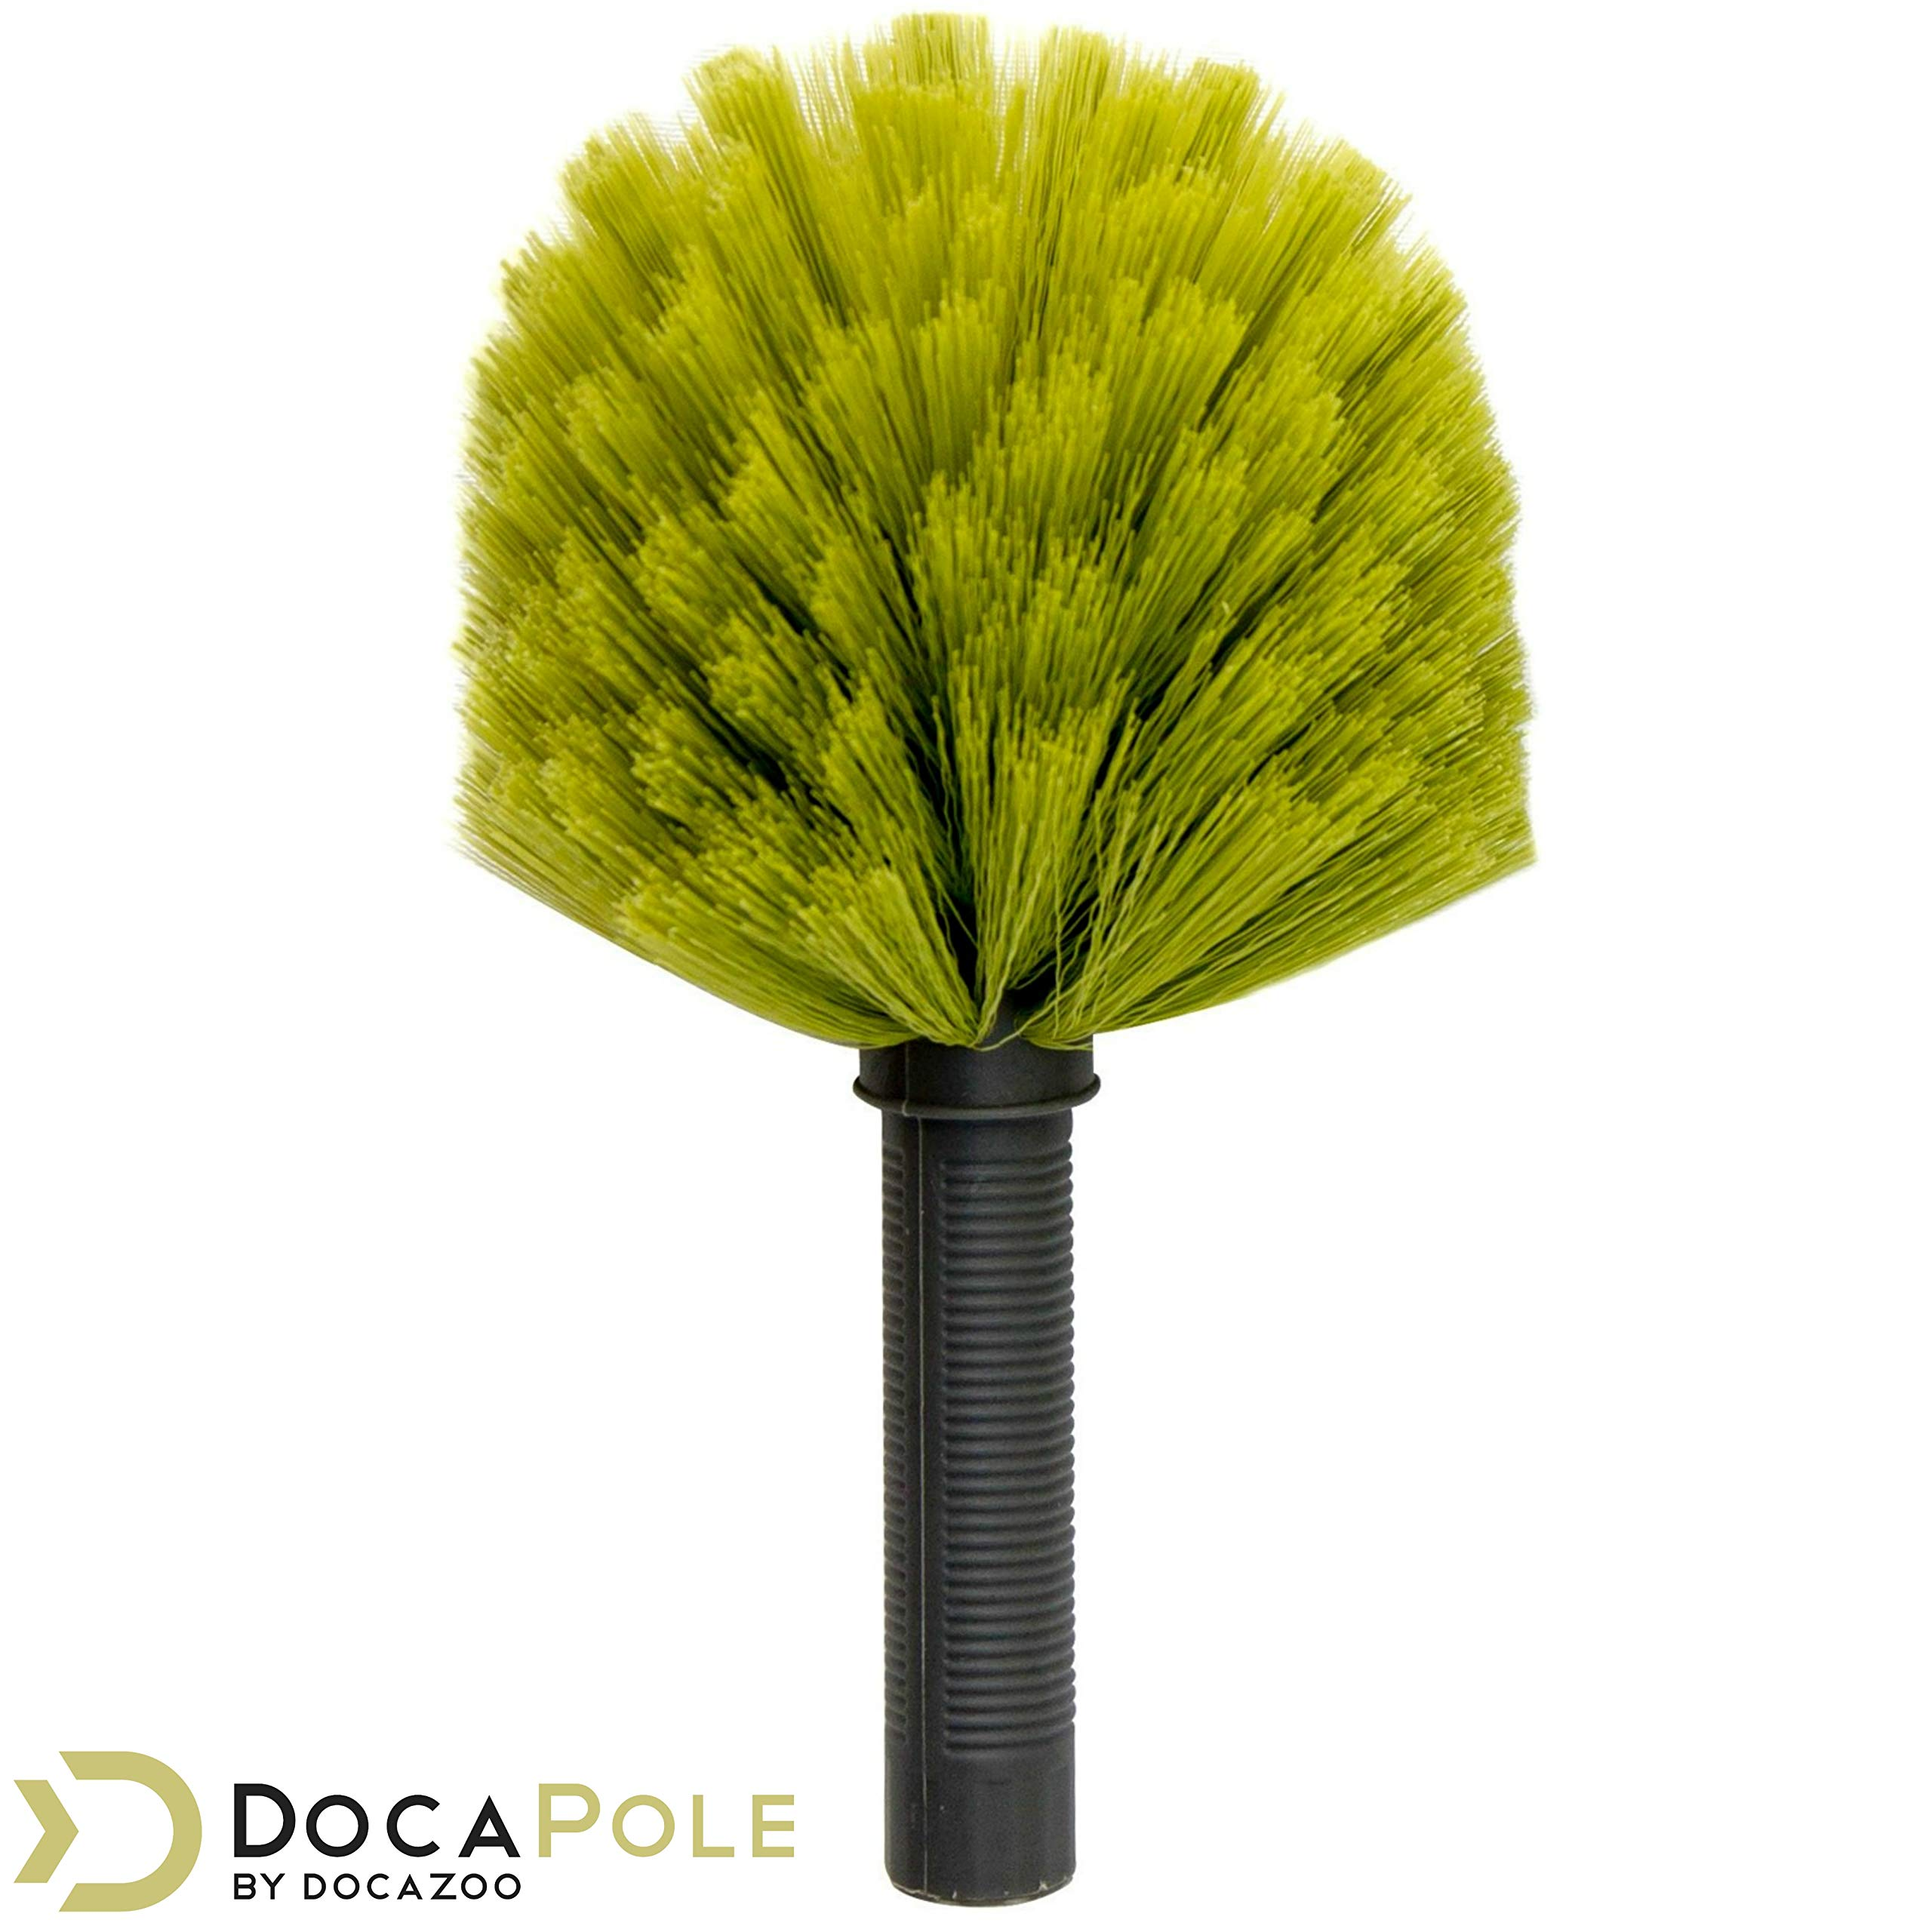 DocaPole Dusting Kit for Extension Pole or by Hand | Cleaning Kit Includes 3 Dusting Attachments | Cobweb Duster | Microfiber Feather Duster | Flexible Chenille Ceiling Fan Duster by DOCAZOO (Image #4)